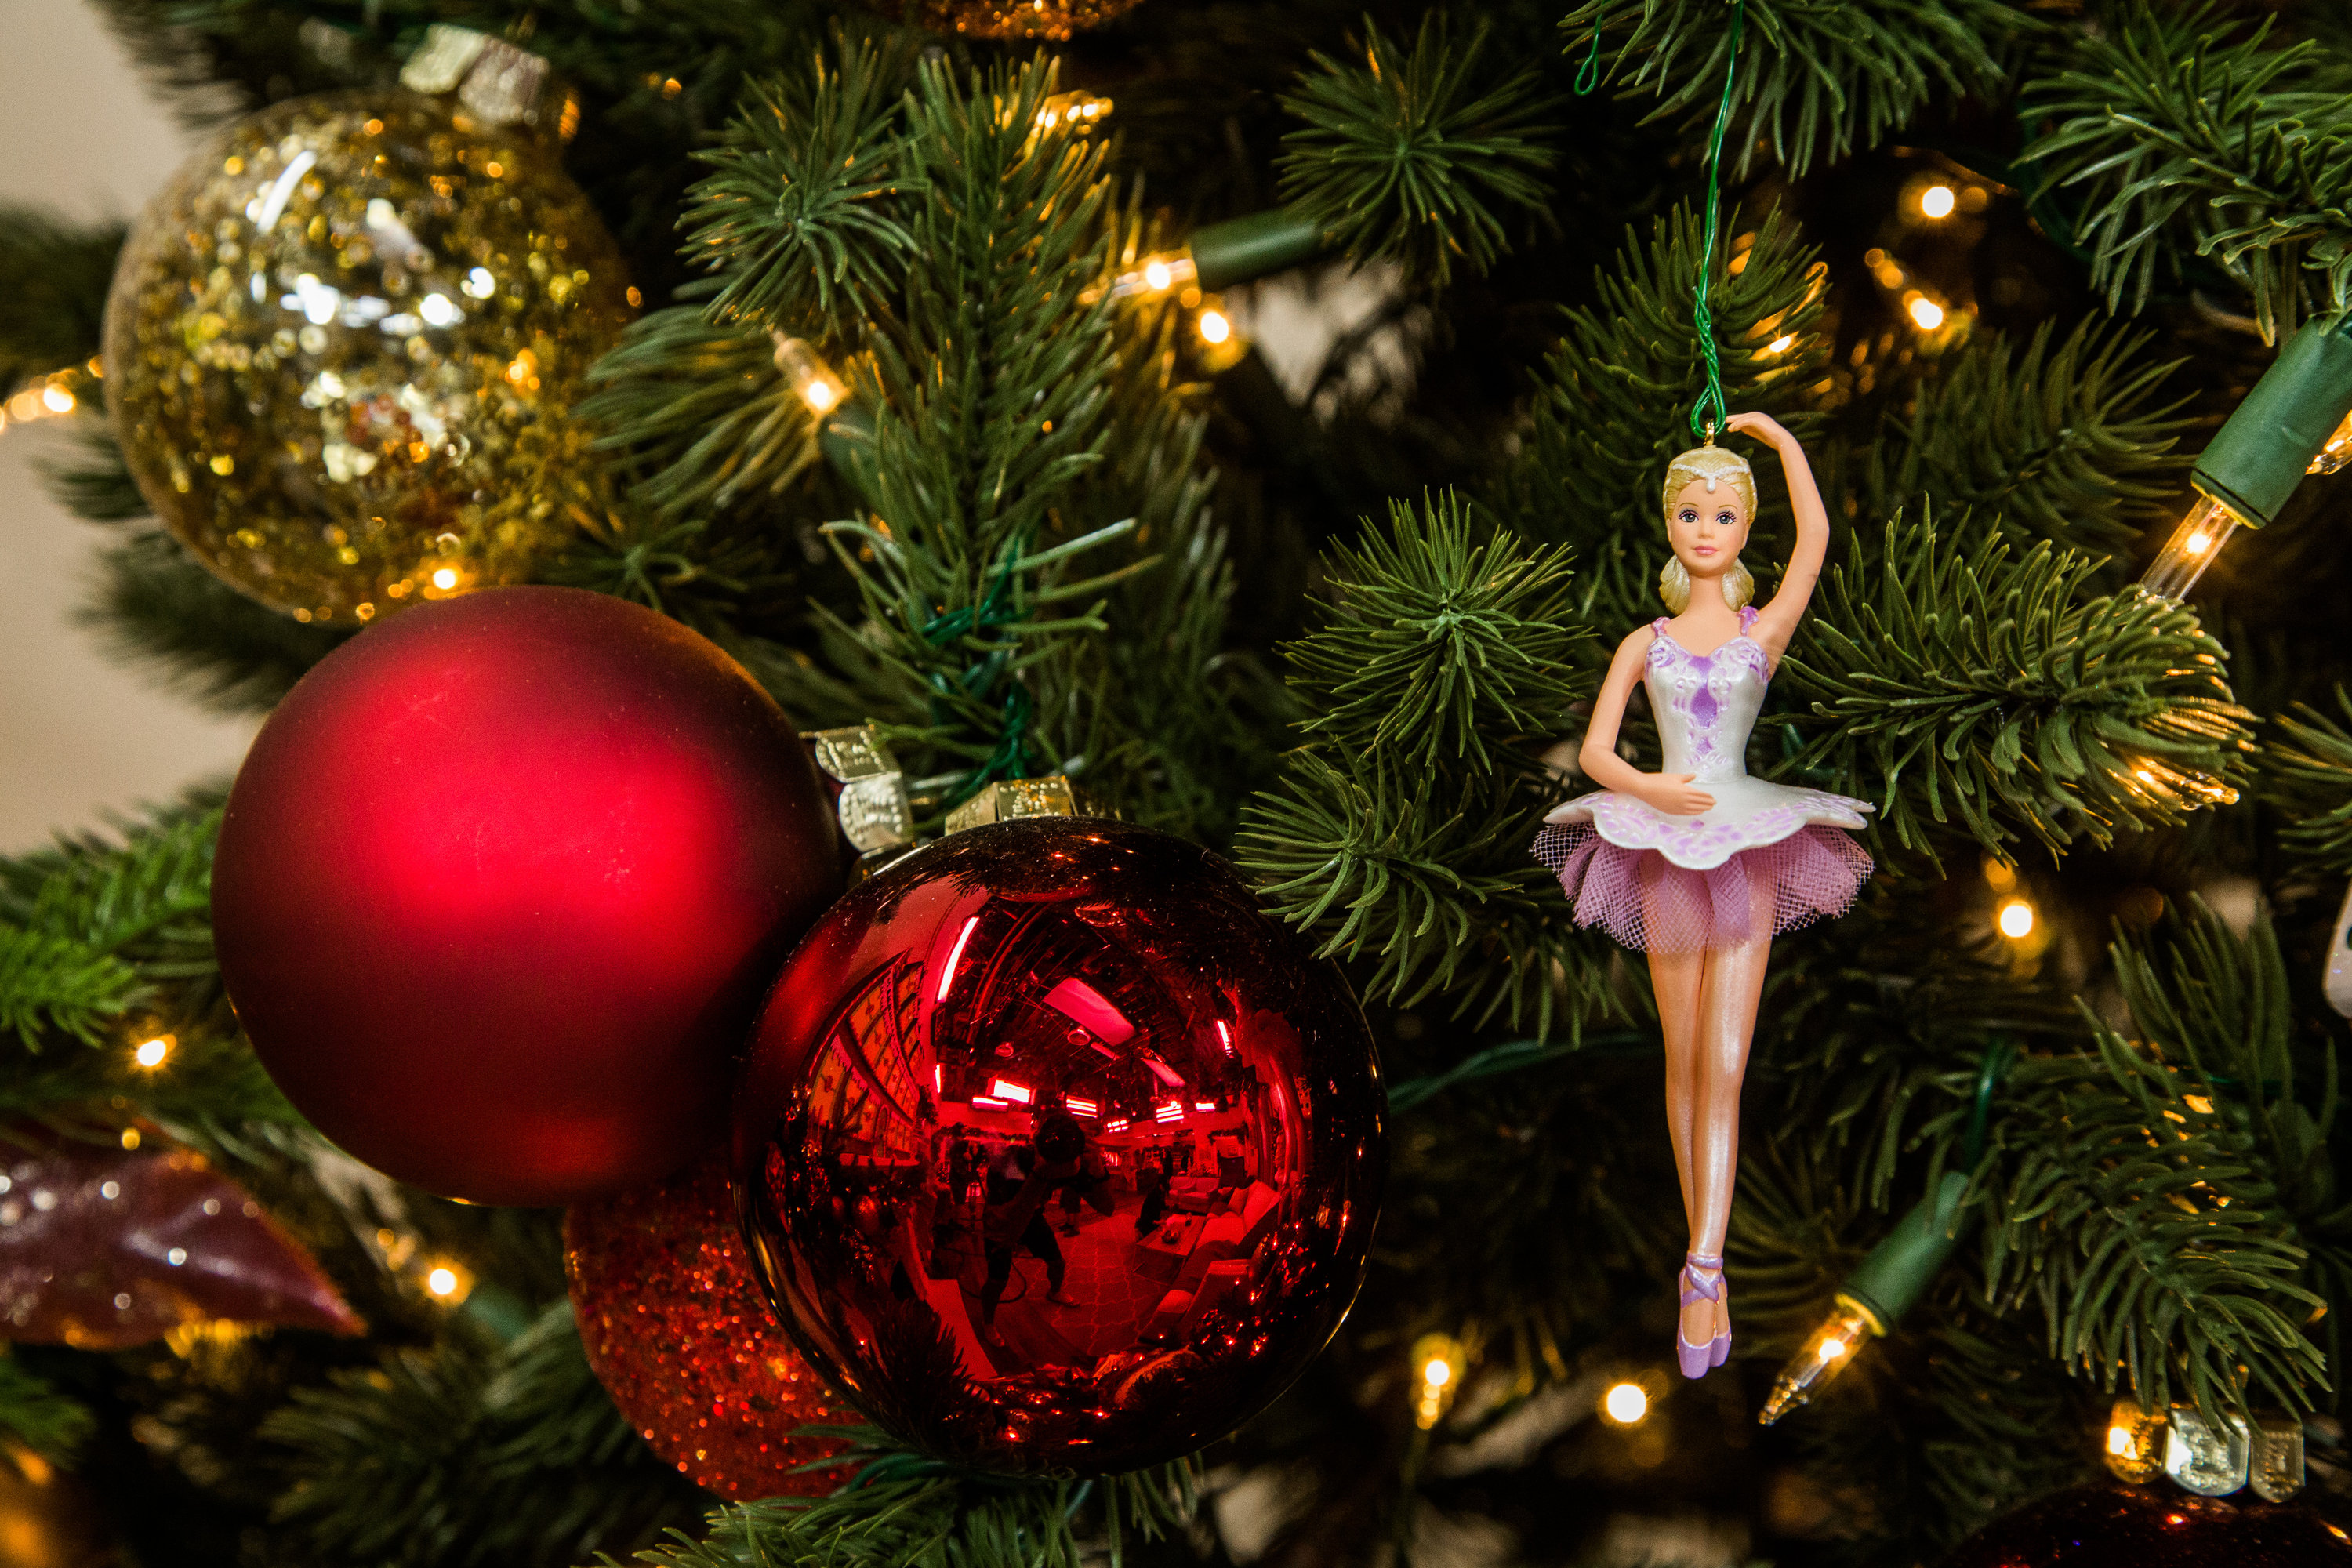 Barbie Christmas Tree Decorations.Ballet Wishes Barbie Ornament Countdown To Christmas